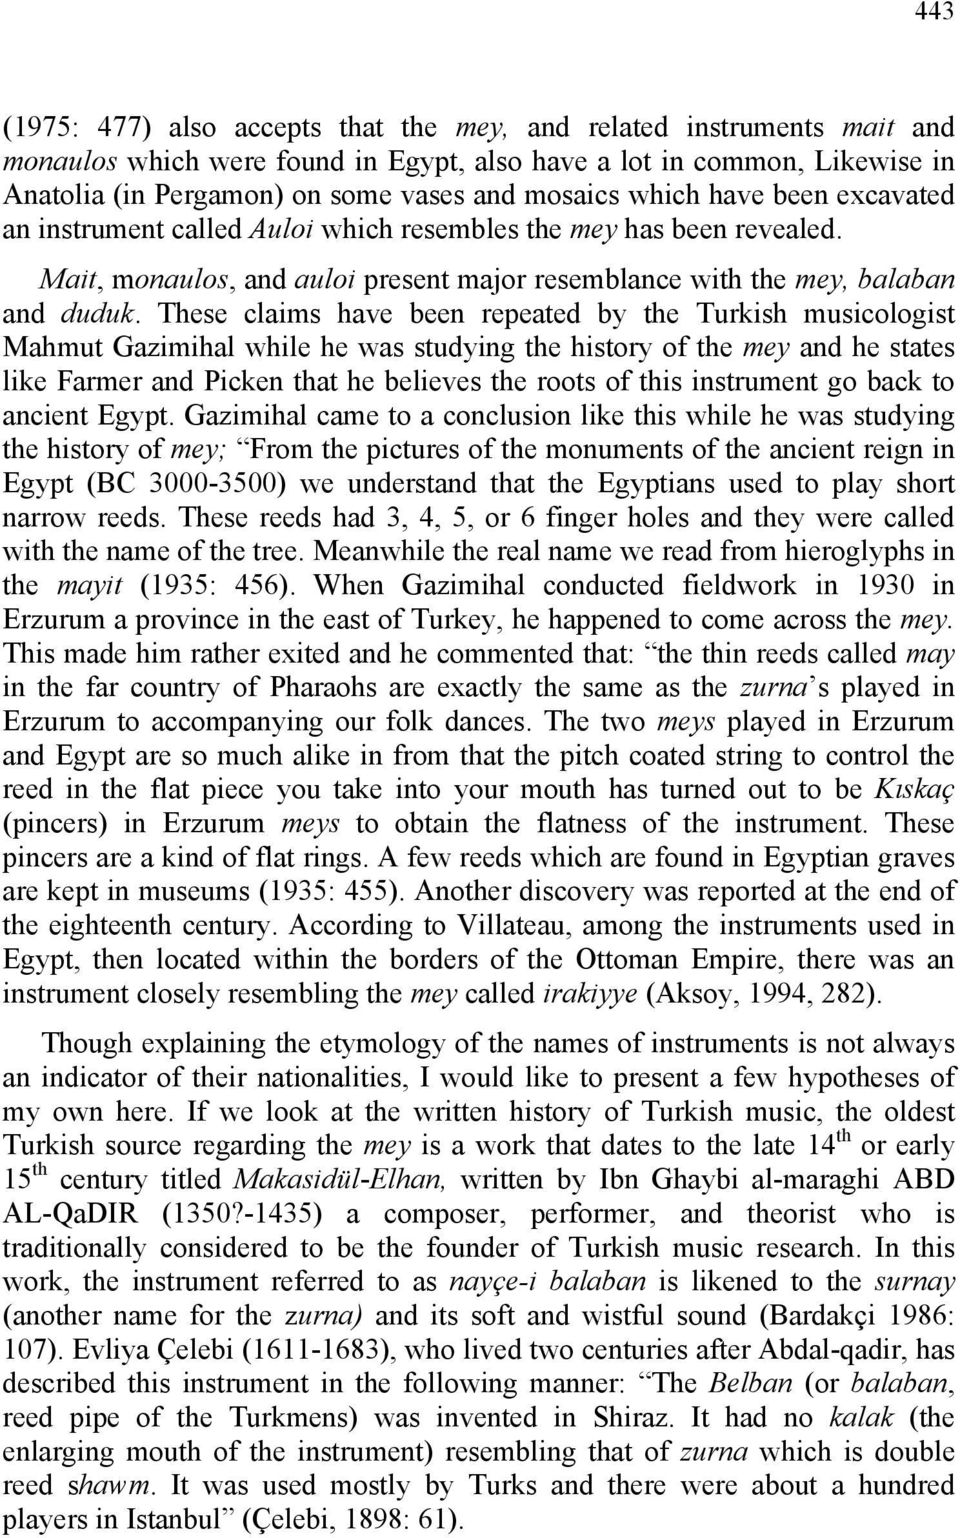 These claims have been repeated by the Turkish musicologist Mahmut Gazimihal while he was studying the history of the mey and he states like Farmer and Picken that he believes the roots of this